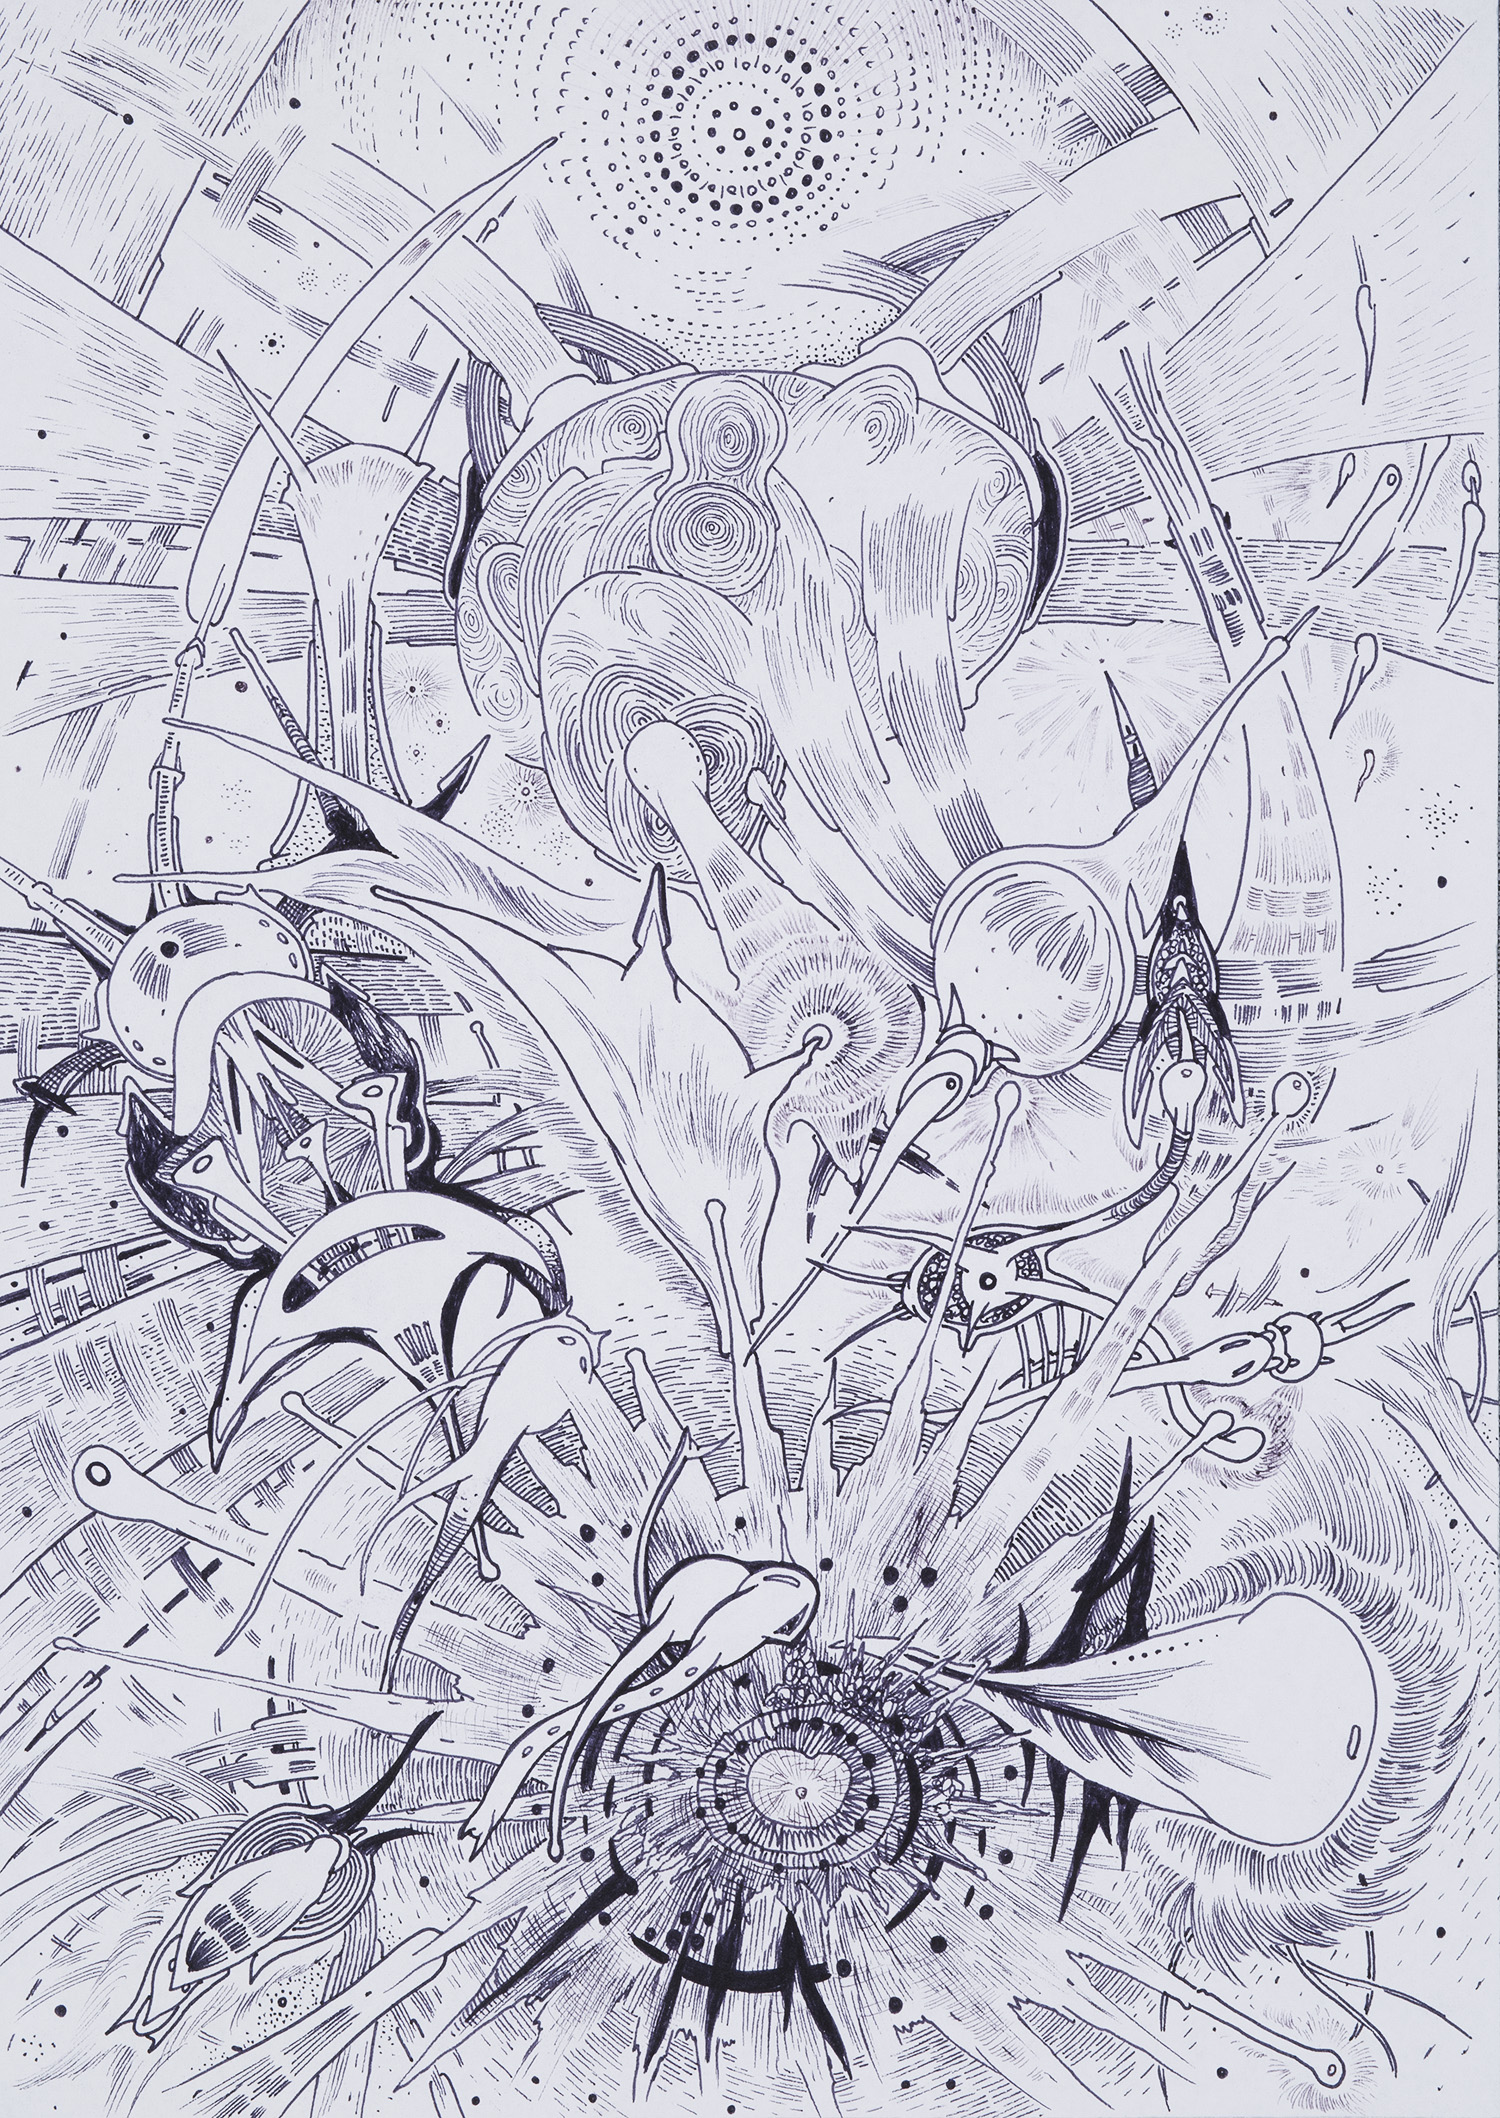 Jaroslav Čevora    Slunovrat / Solstice  , 2007 China ink on paper 11.81 x 8.27 inches 30 x 21 cm JCev 3